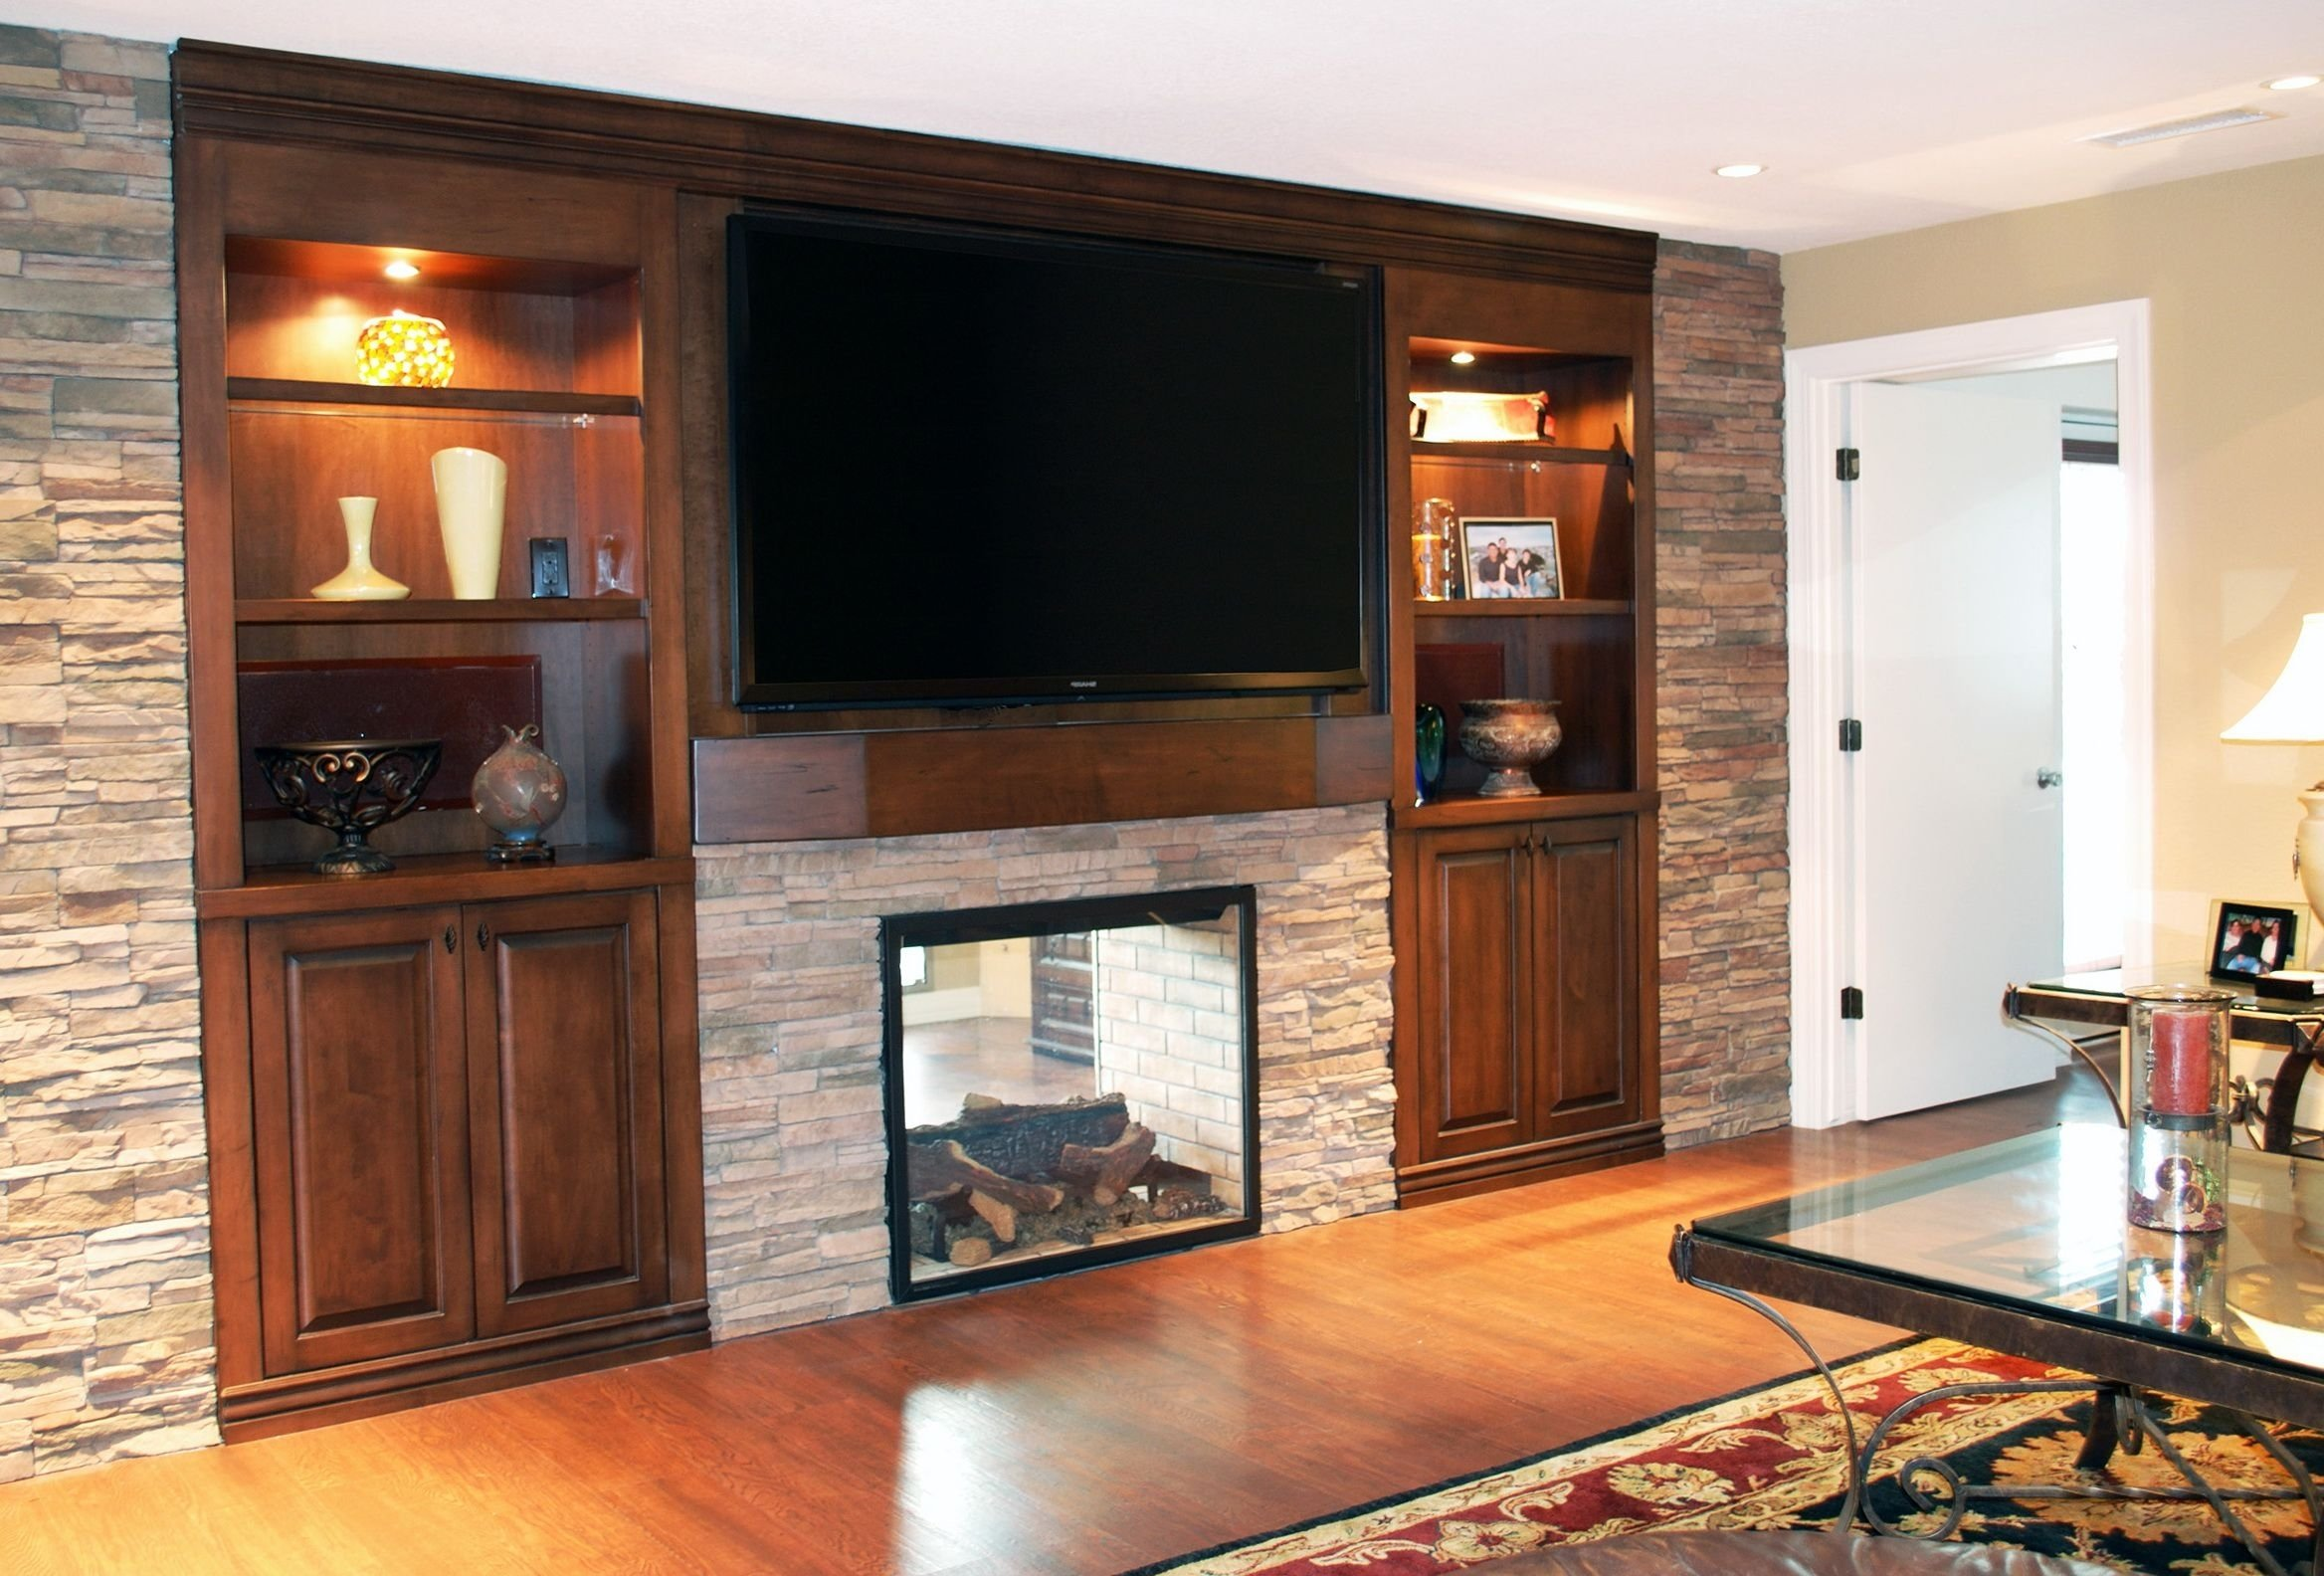 10 Awesome Built In Entertainment Center Ideas wall entertainment center with fireplace fireplace pinterest 2020